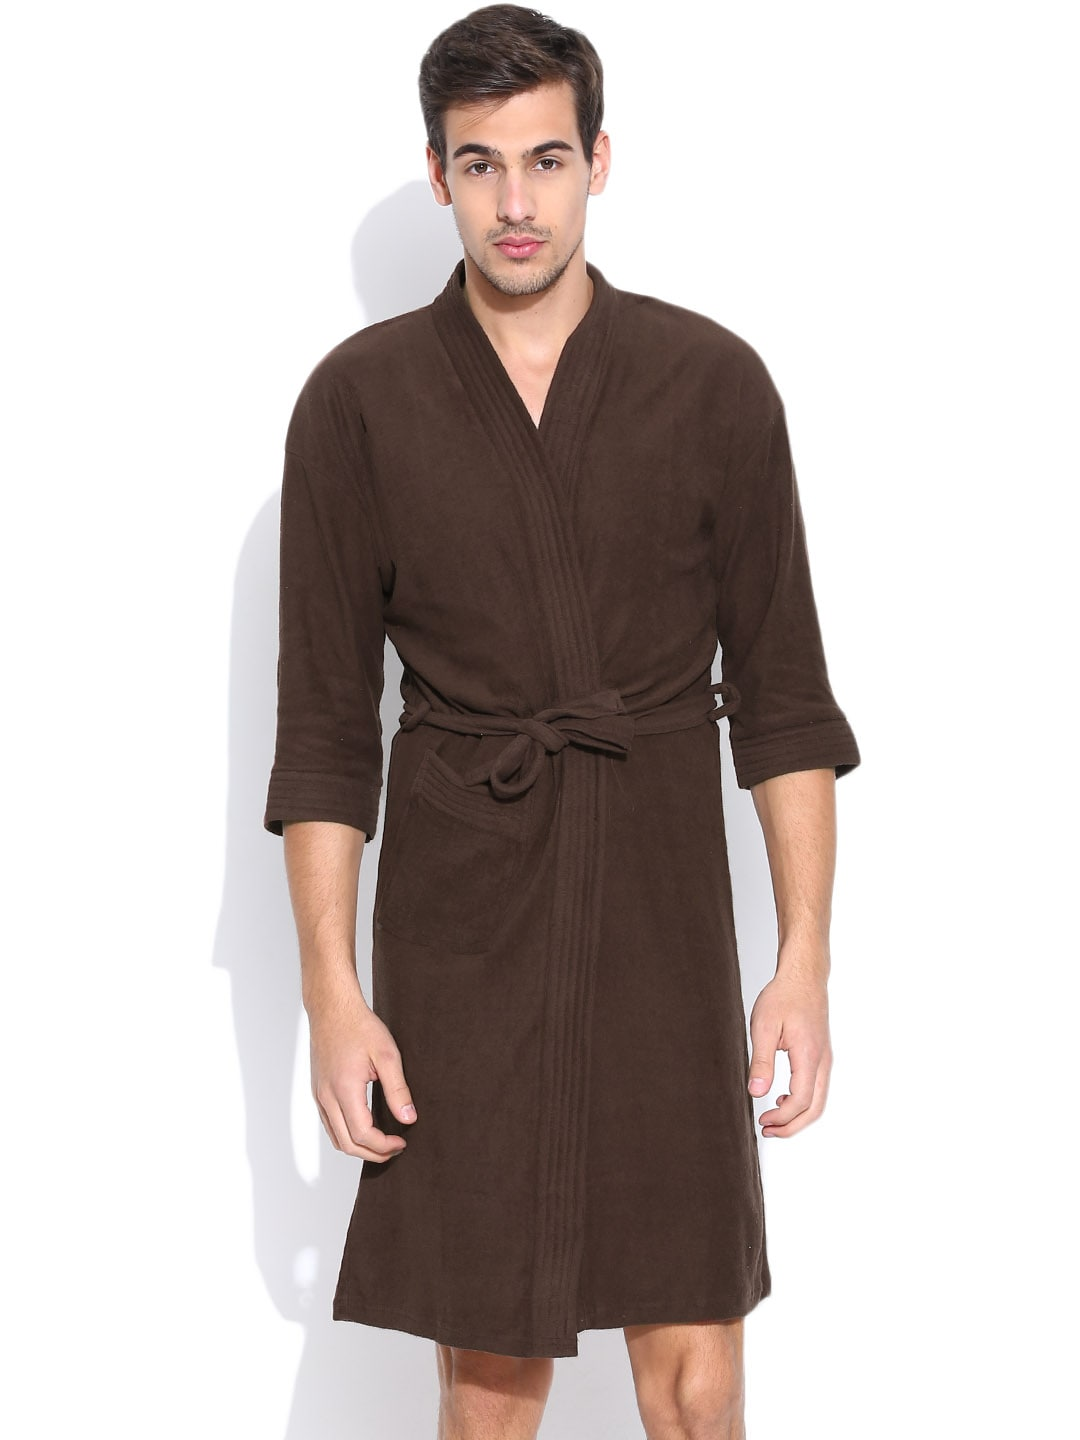 Sand Dune Brown Bathrobe